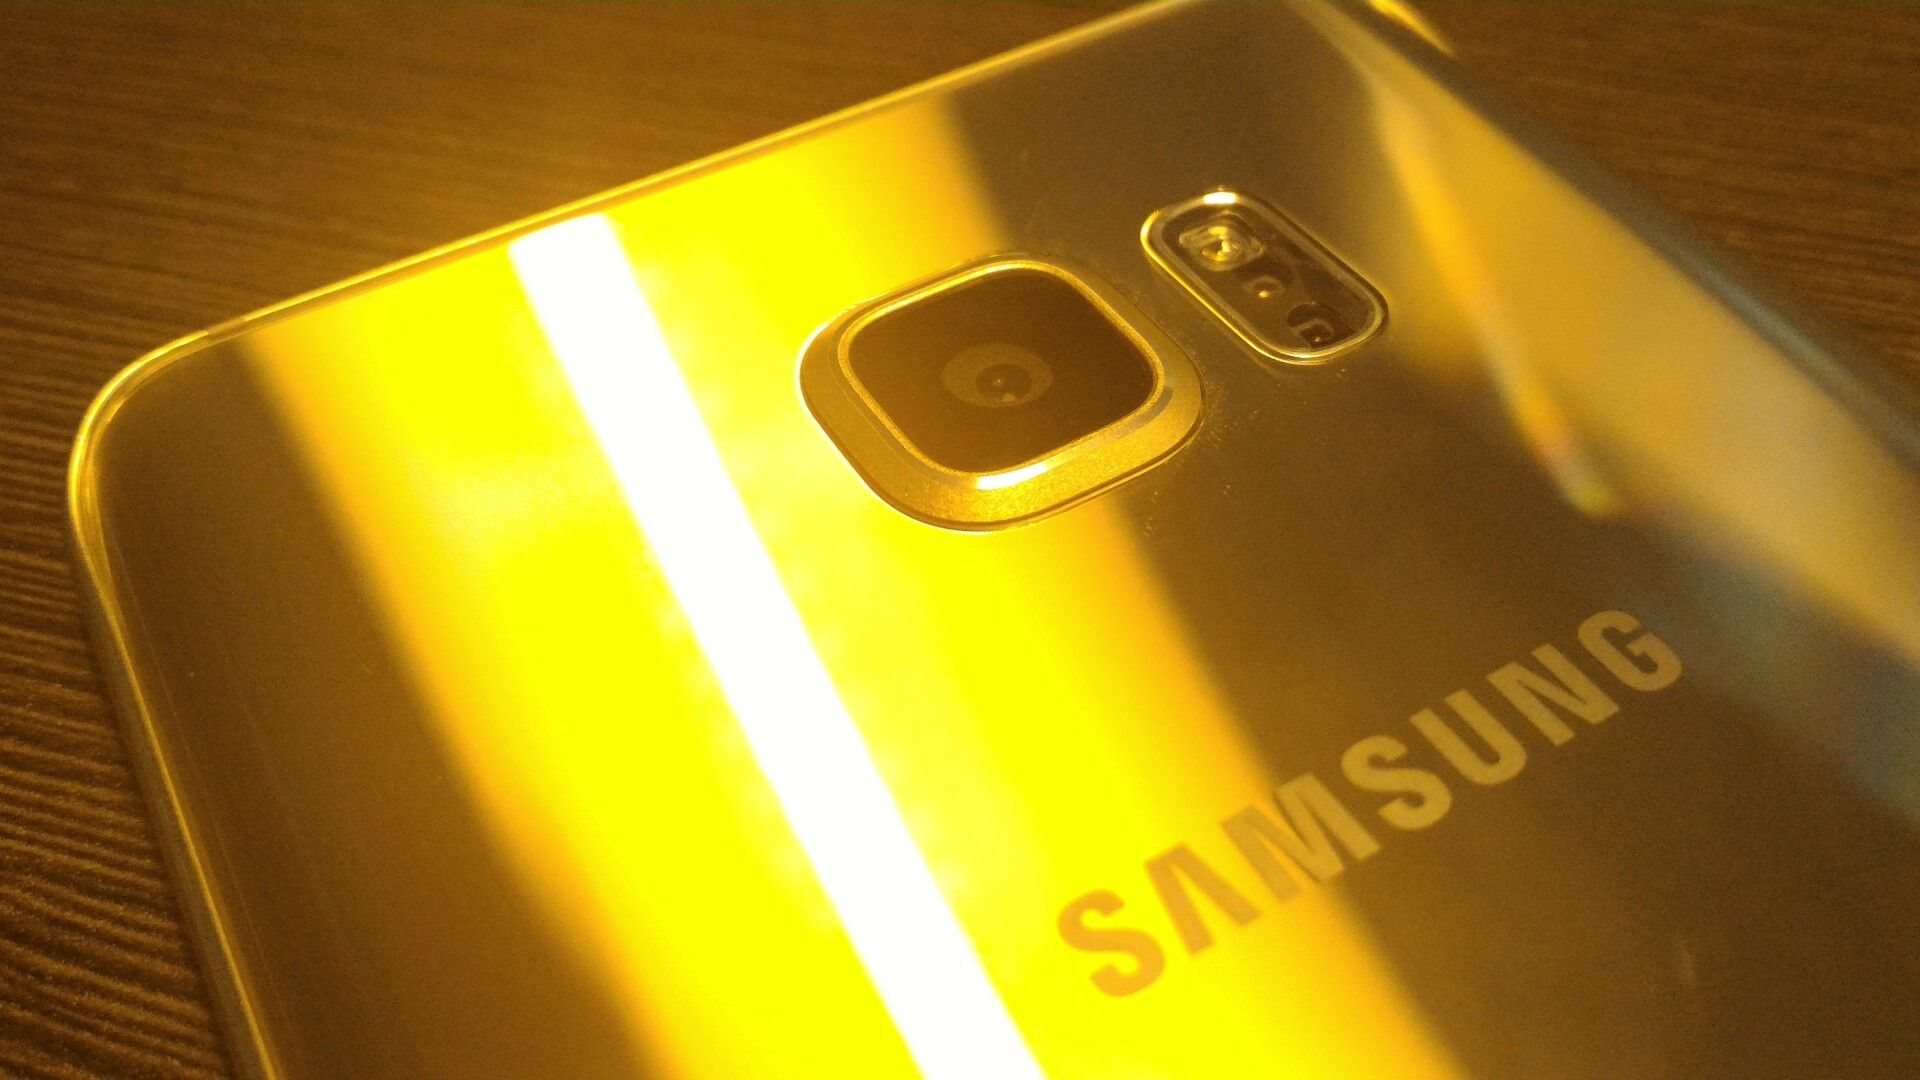 Samsung Galaxy Note 5 Review 27